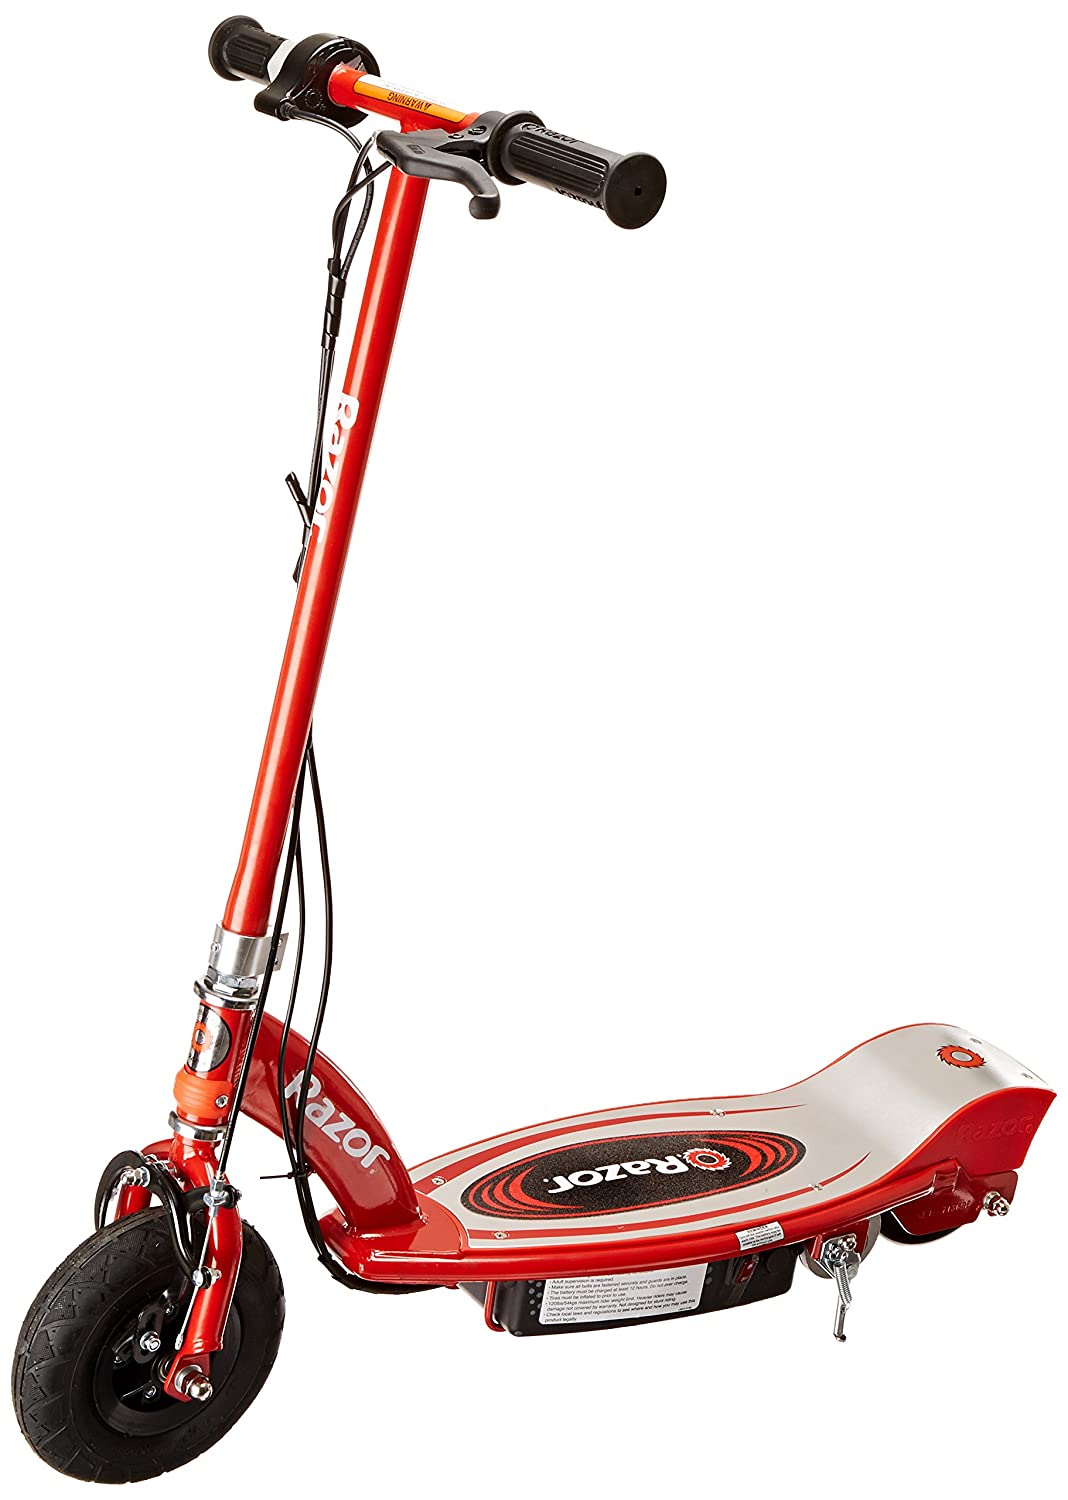 Best Toys for Kids 2016: The 3 Best Scooters for Kids on ...